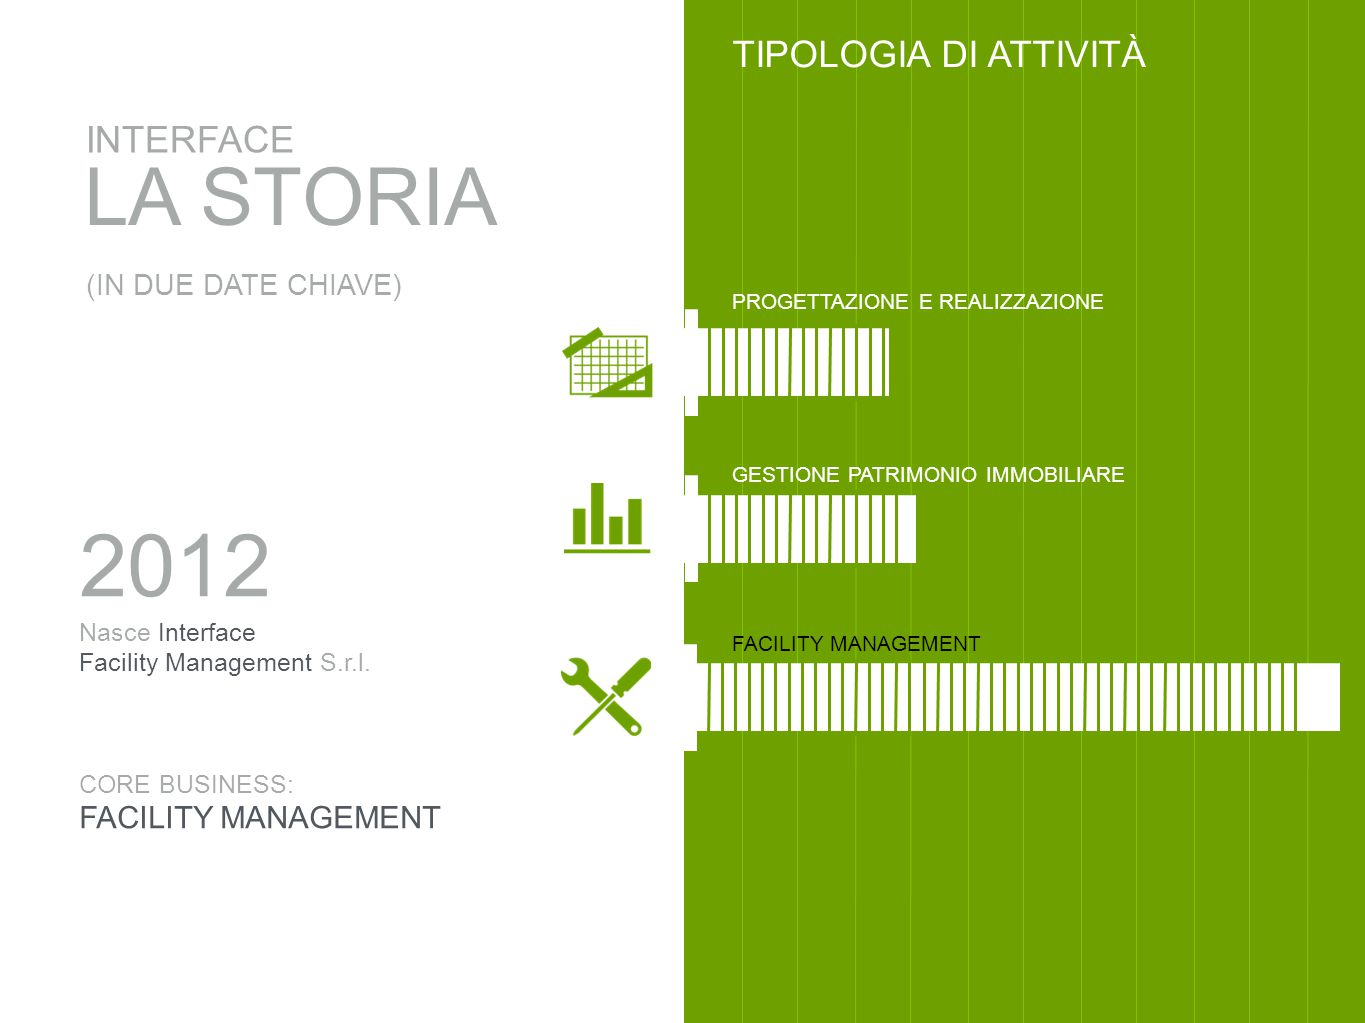 2012 LA STORIA TIPOLOGIA DI ATTIVITÀ INTERFACE FACILITY MANAGEMENT